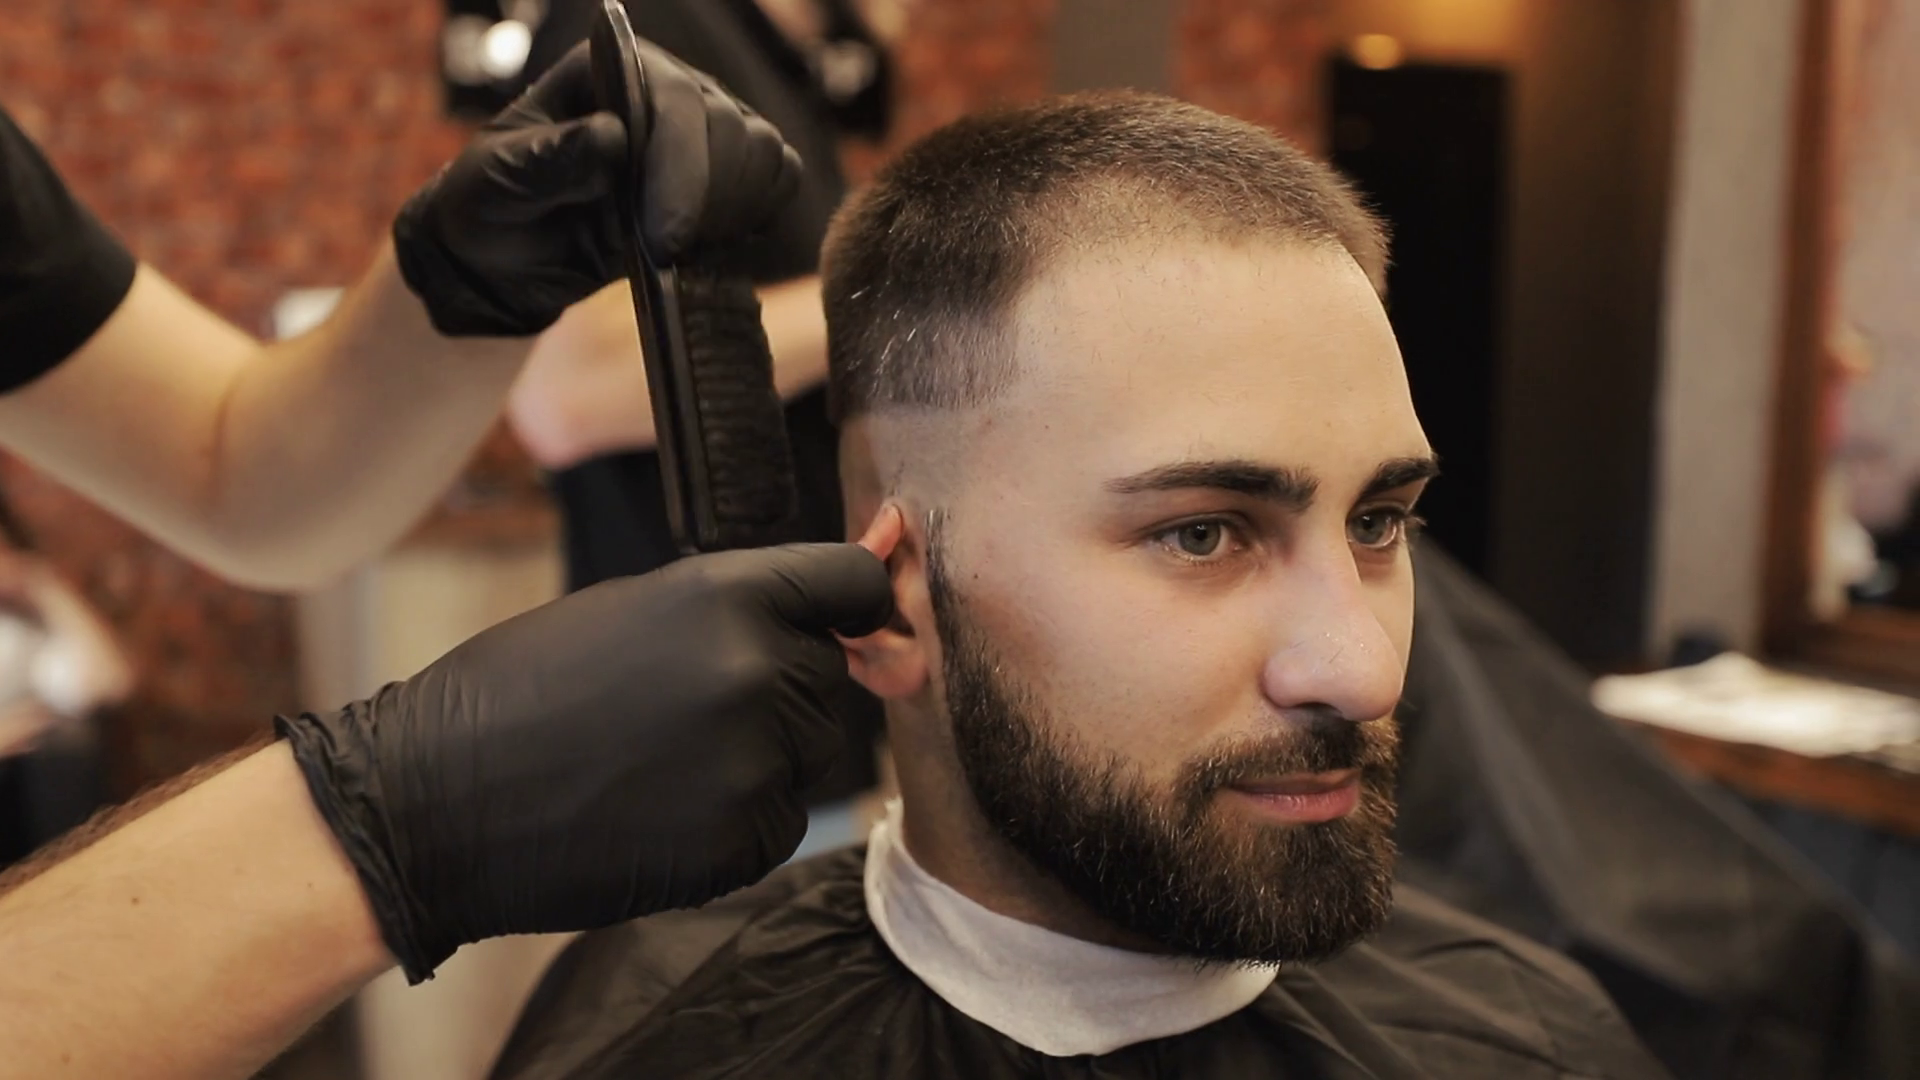 Hairdresser Doing Haircut In Hair Salon Barber Cuts Bearded Man S Hair With A Clipper In Barbershop Men S Hairstyling And Hair Cutting In Salon Stock Video Footage Storyblocks